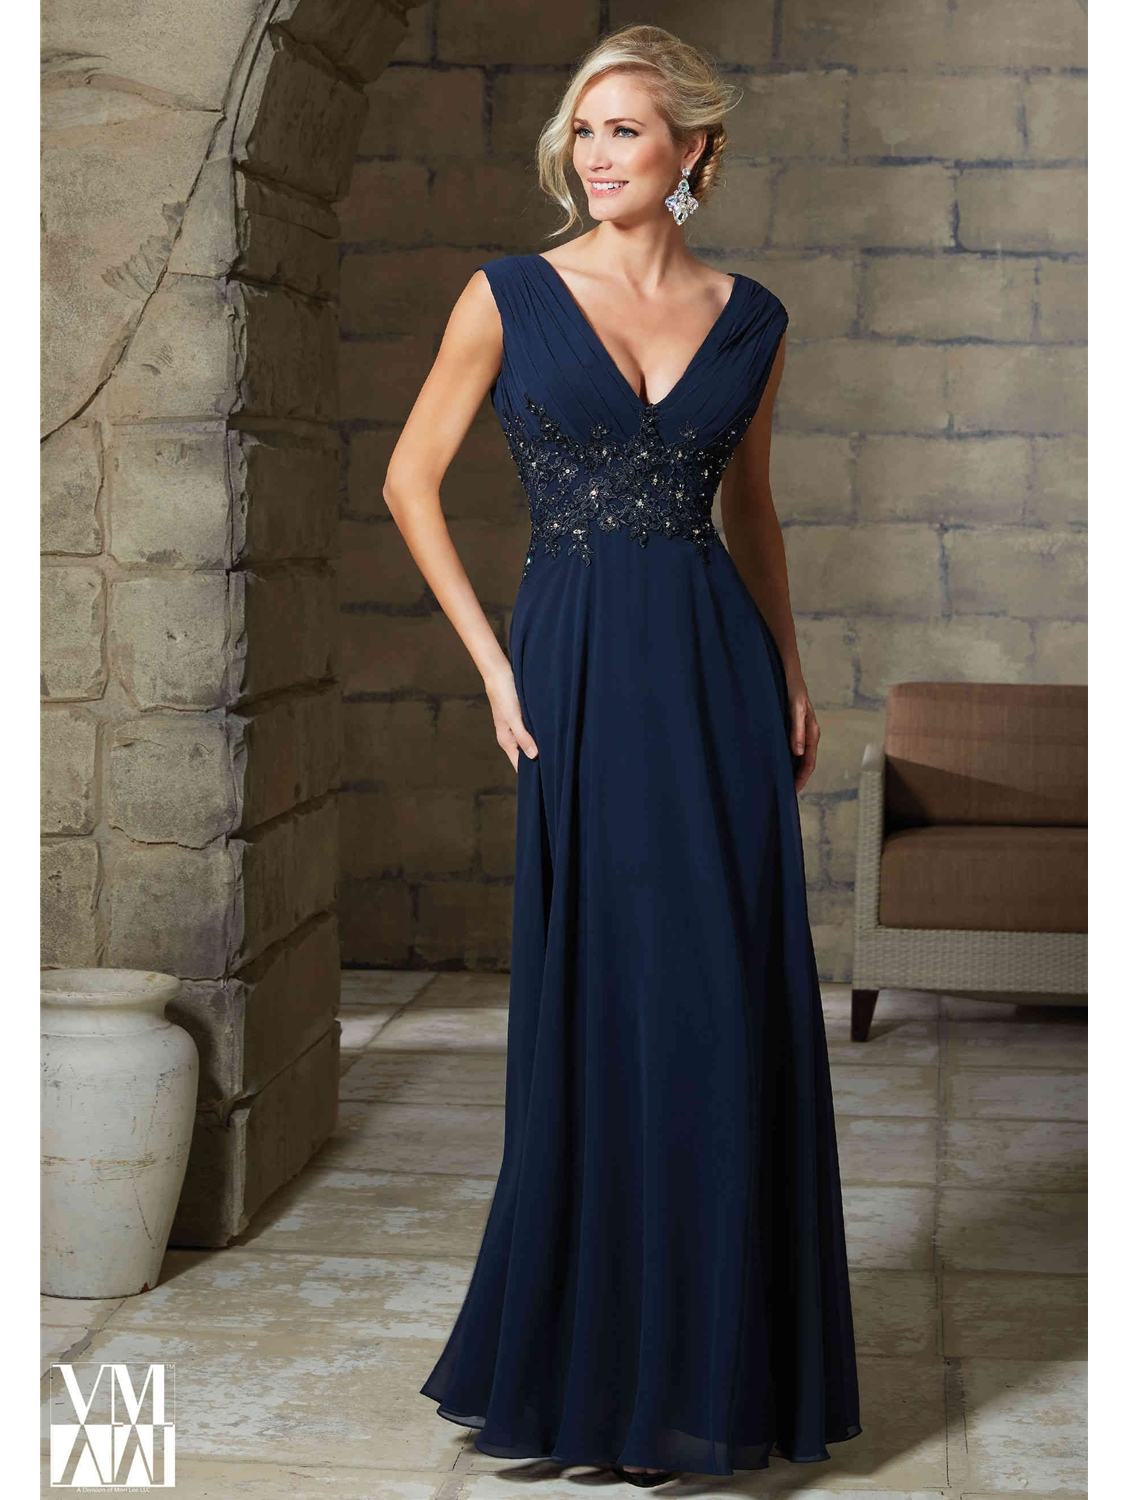 mori lee mother of the bride dresses mothers wedding dresses Vm Collection By Mori Lee Mother Of The Wedding Dress Style